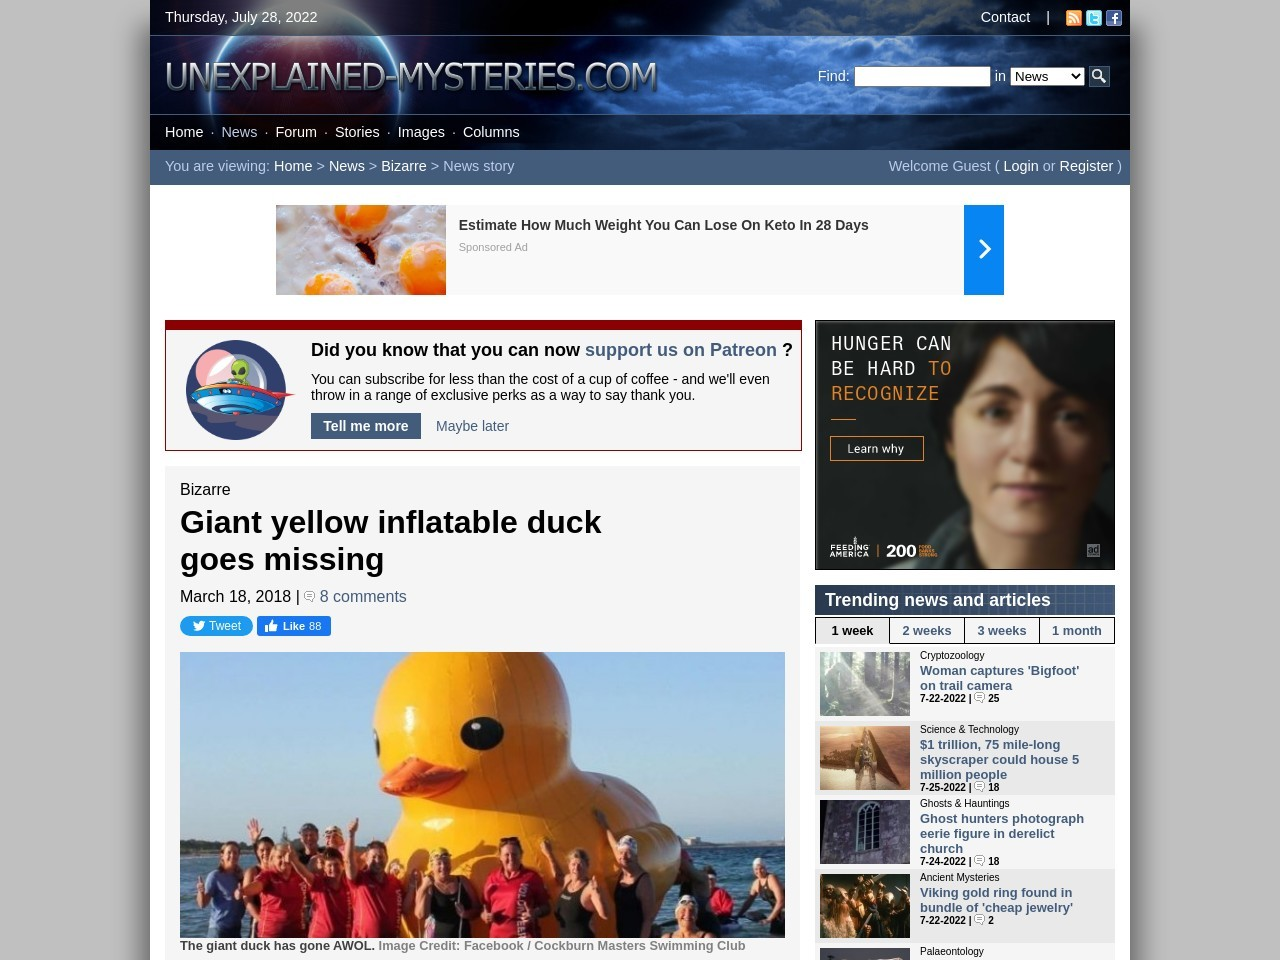 Giant yellow inflatable duck goes missing